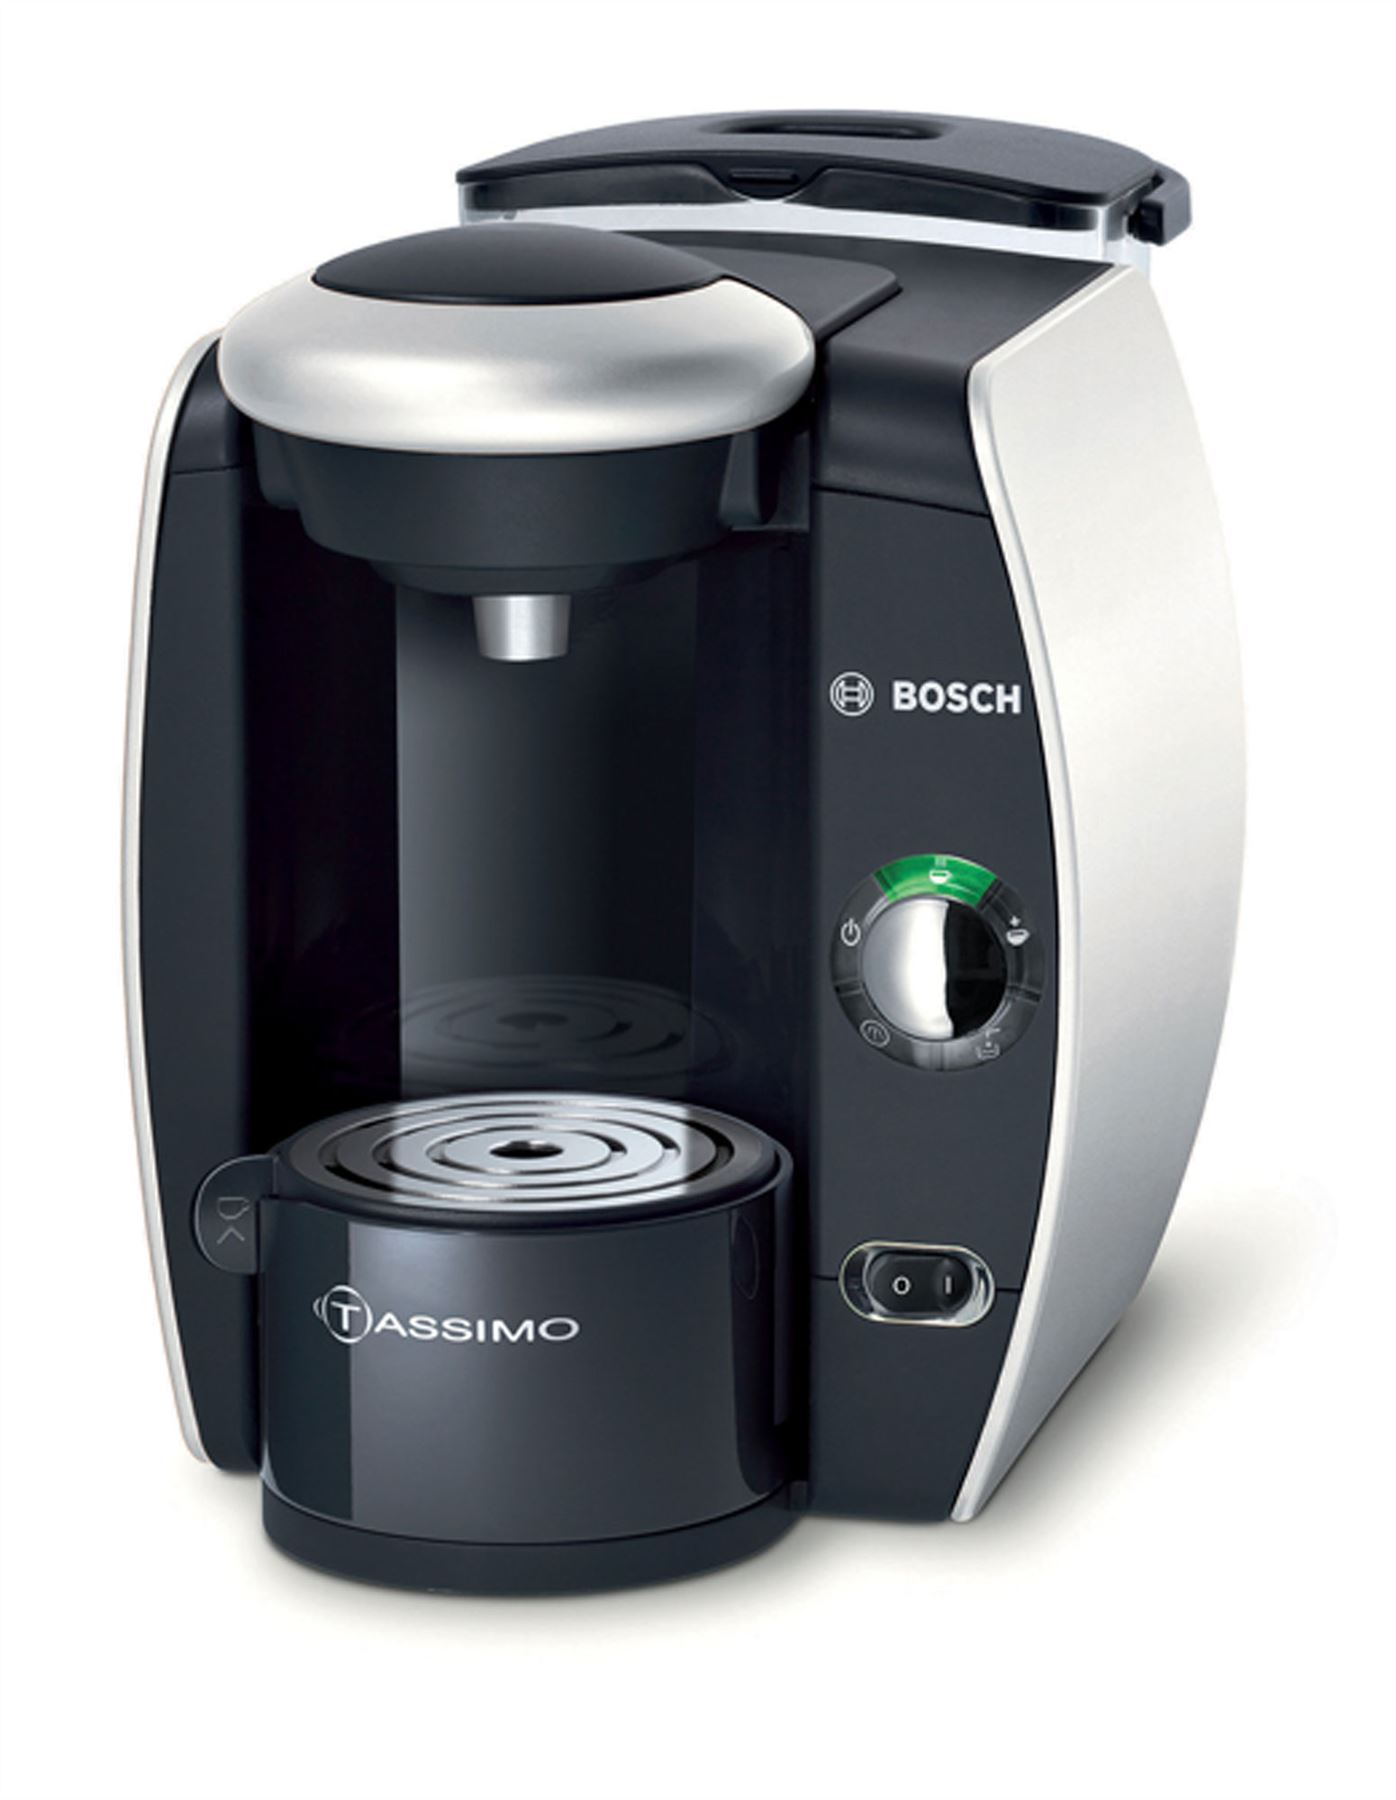 Bosch Tassimo T40 Multi Beverage Machine Espresso & Coffee Maker TAS4011GB eBay